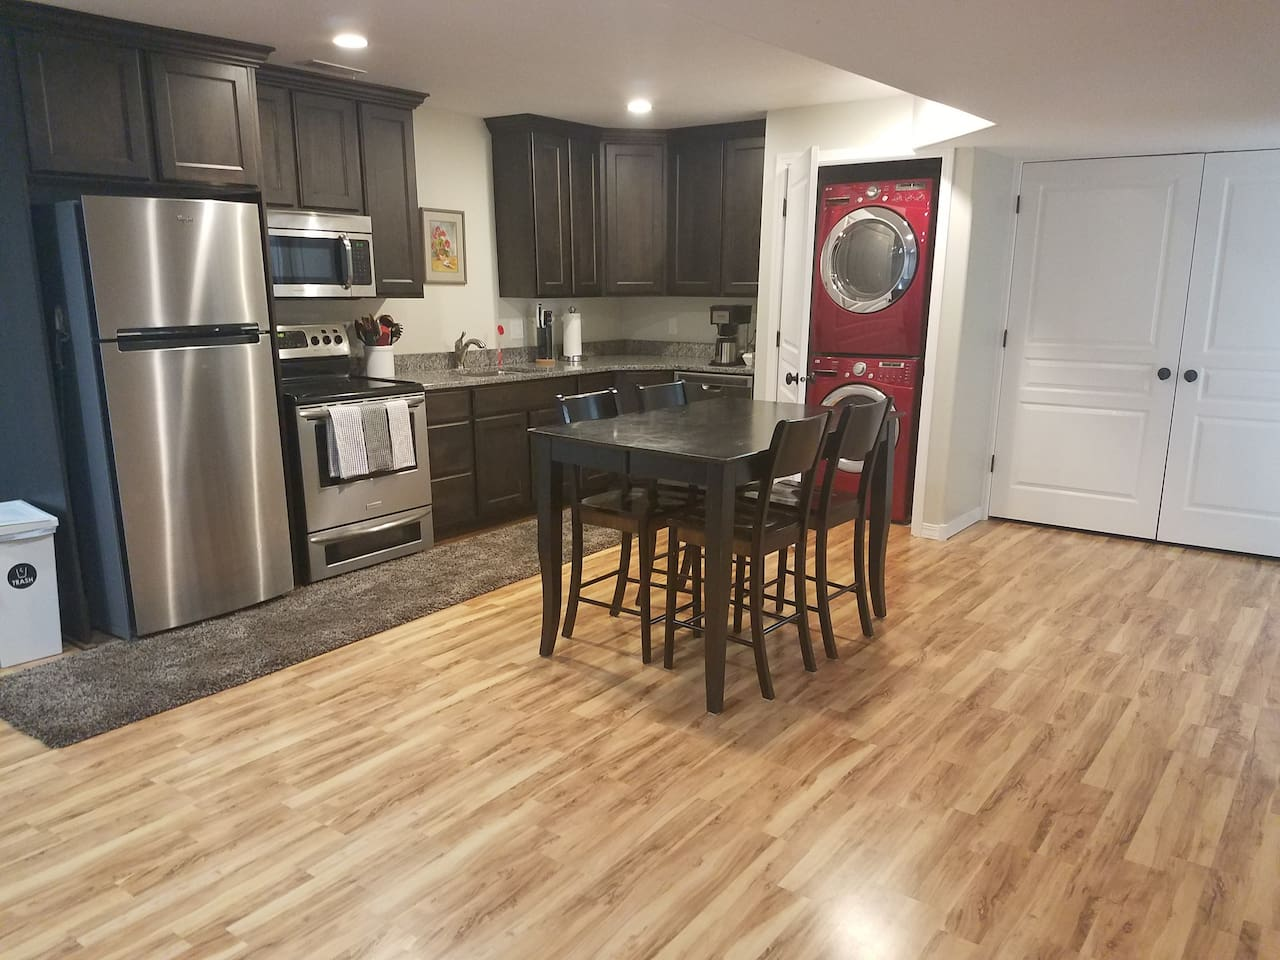 Spacious full kitchen and living area